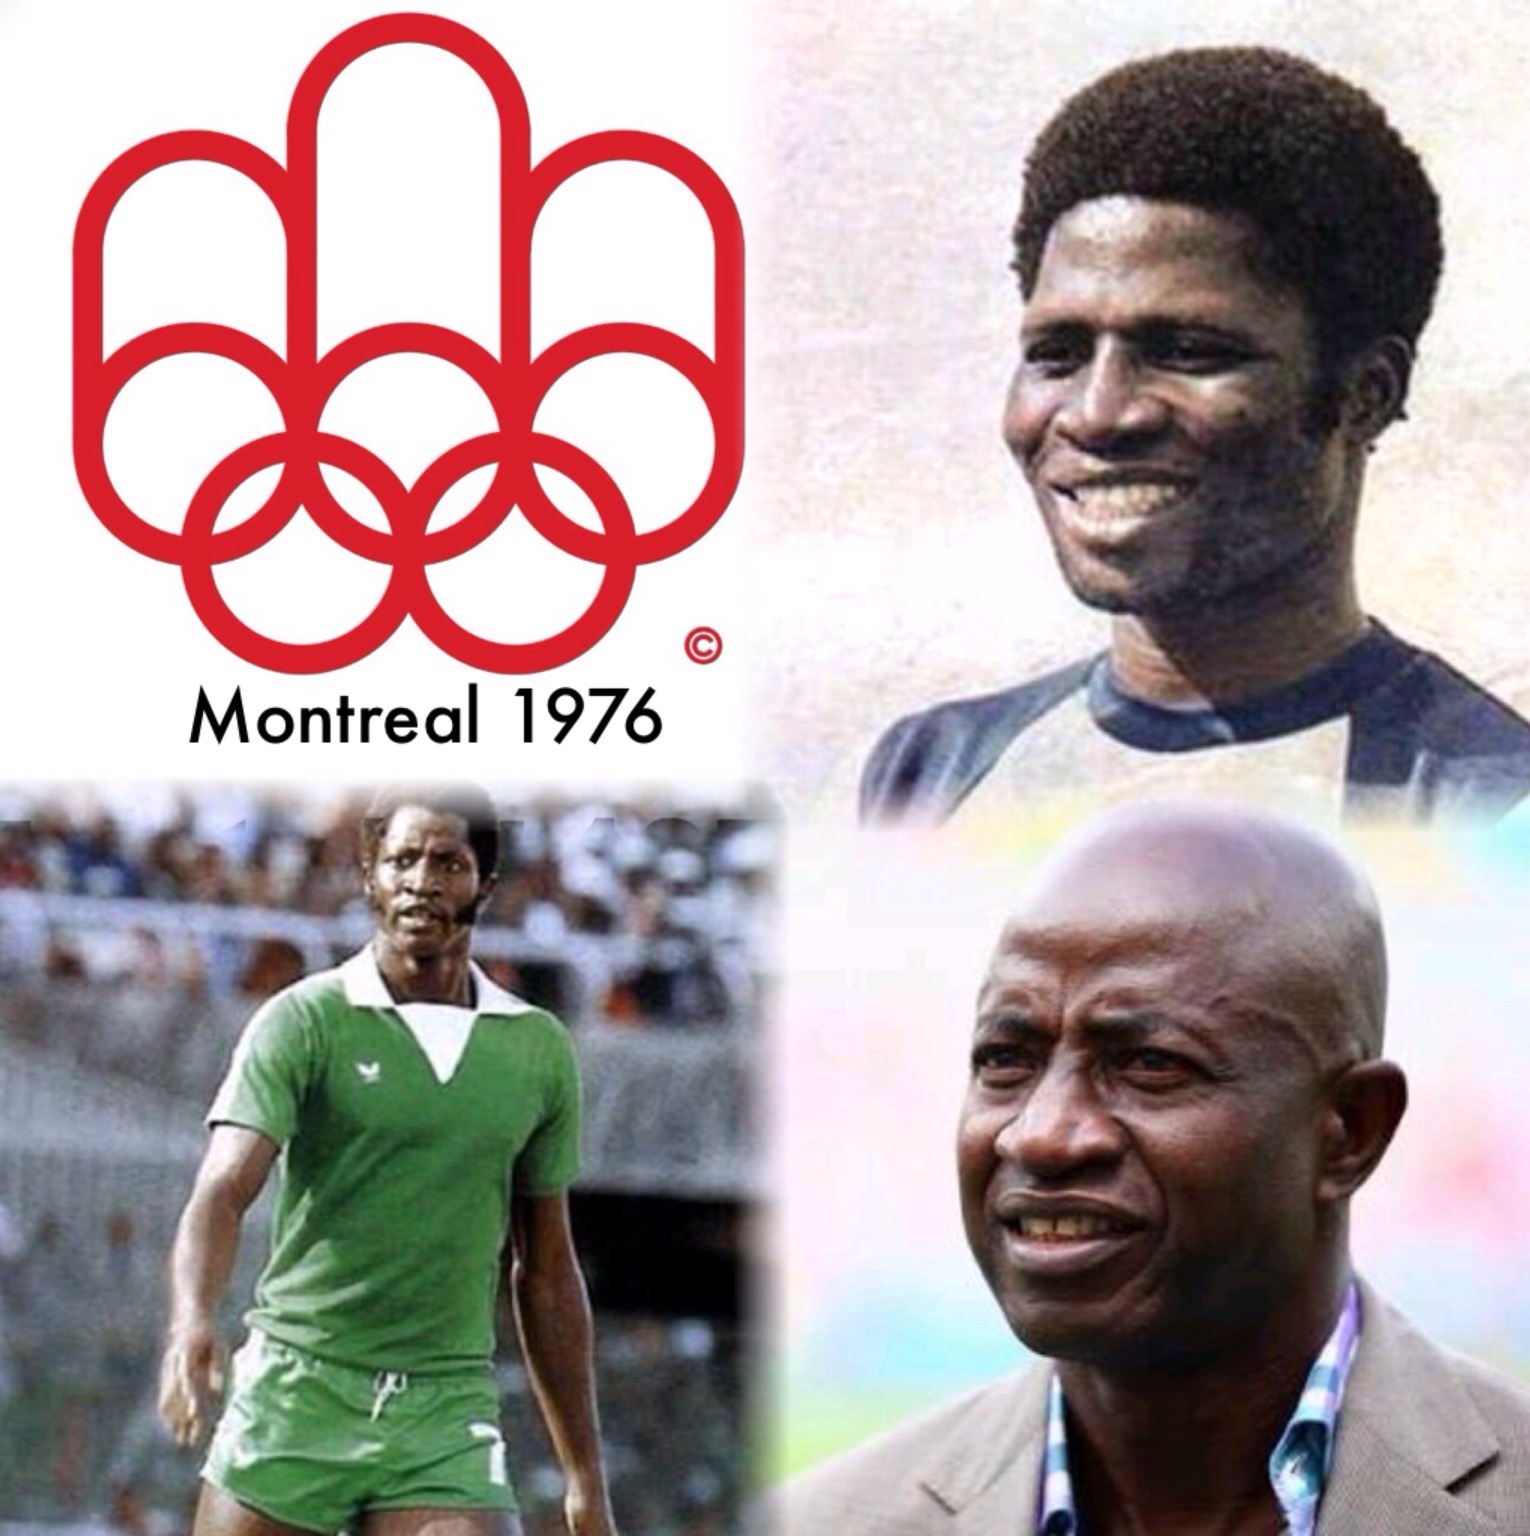 Odegbami: The Olympic Medals I (Never) Won!